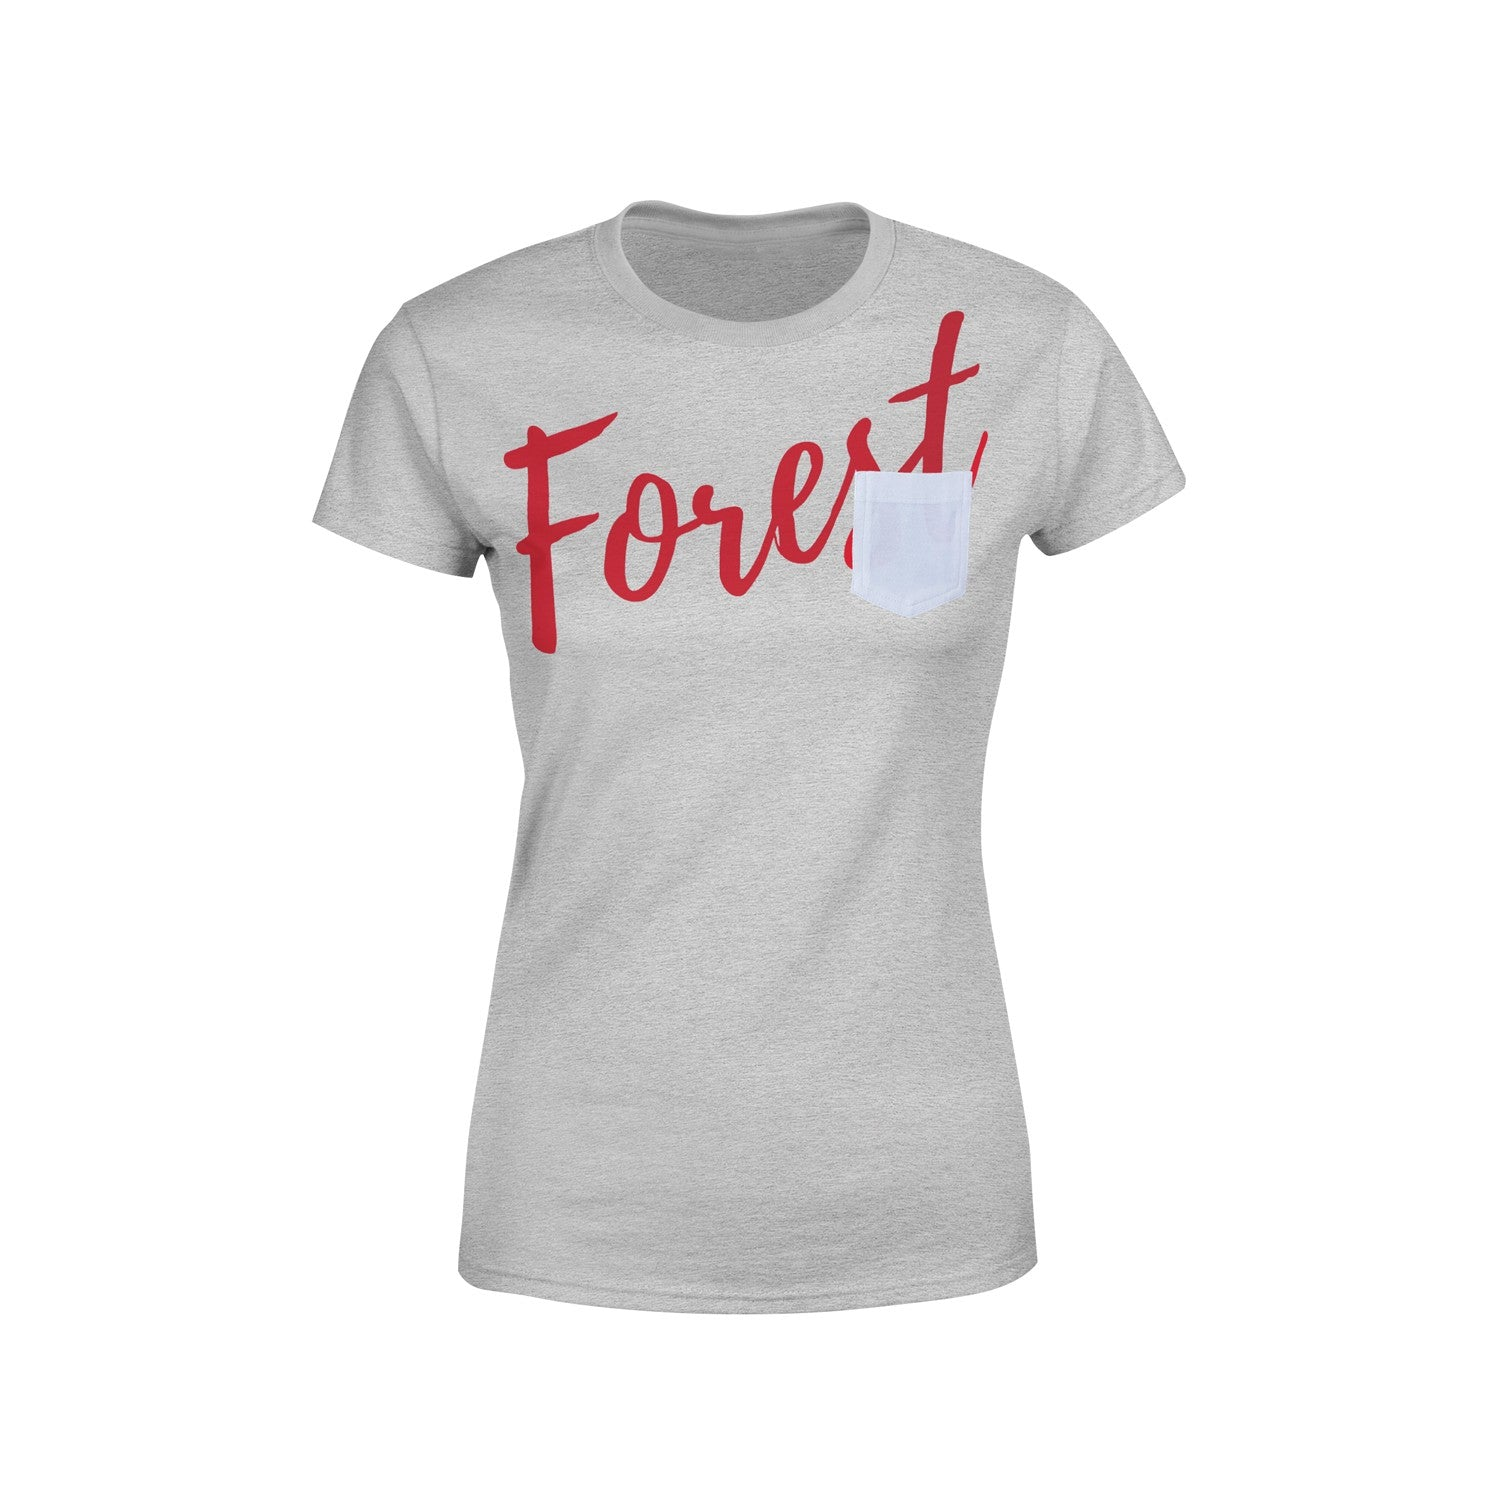 NFFC Womens Grey Pocket T-Shirt